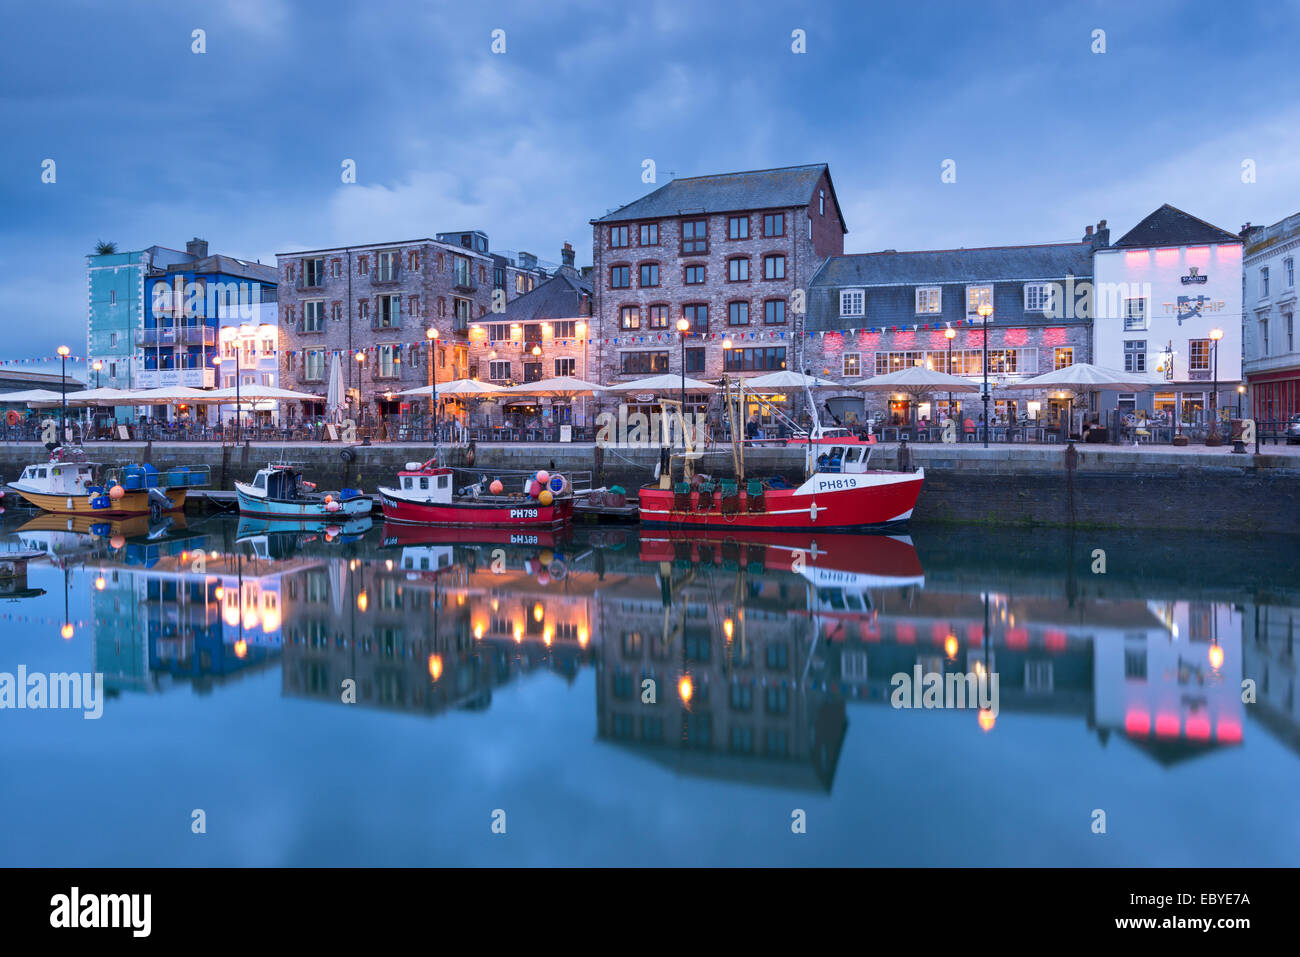 Evening at The Barbican, Plymouth, Devon. Summer (June) 2014. - Stock Image